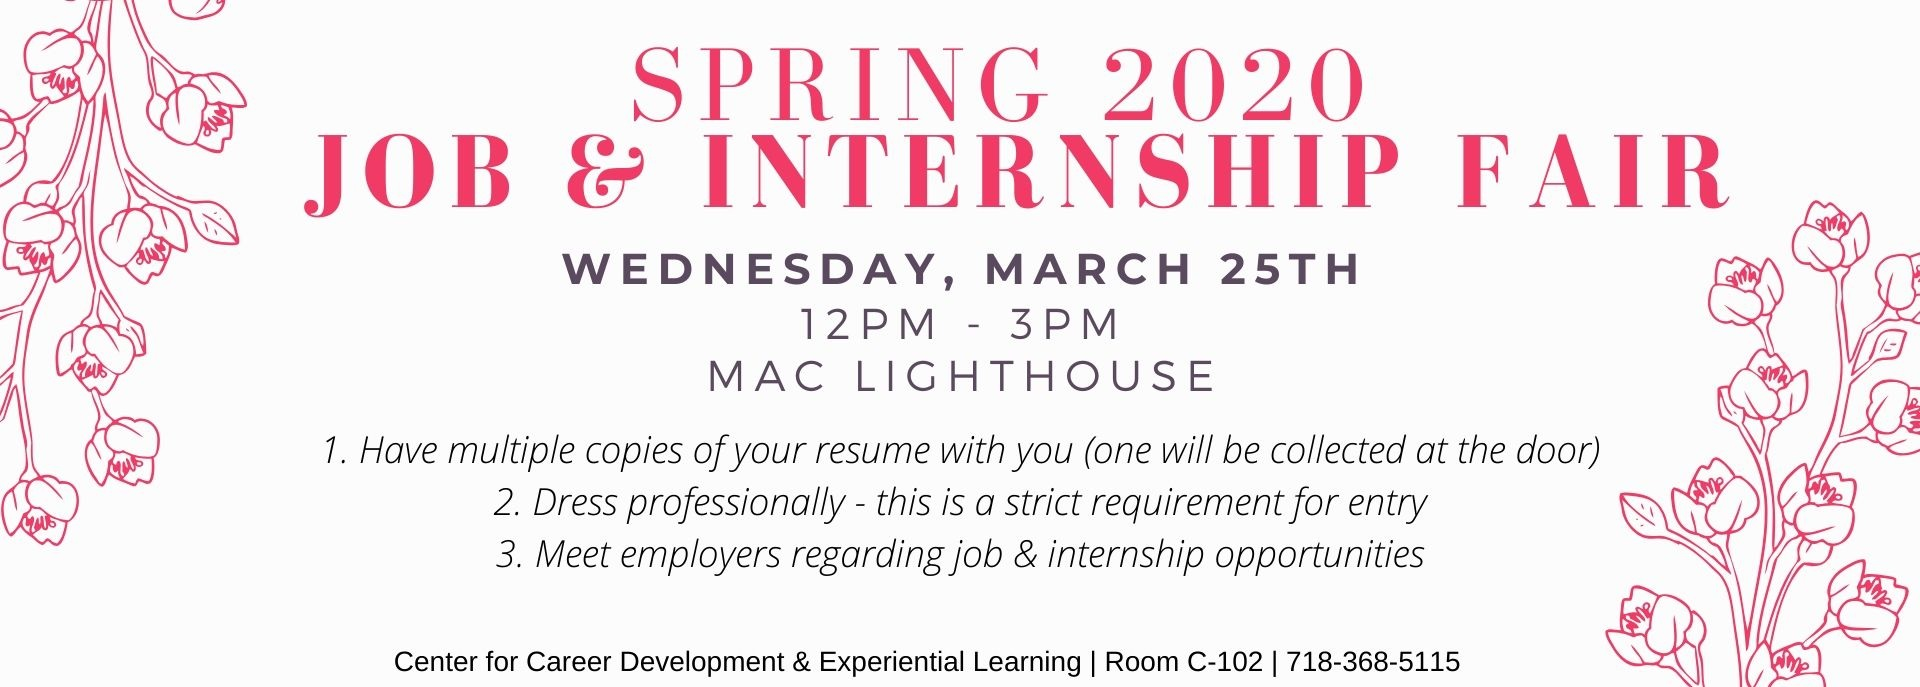 Spring 2020 Job & Internship Fair